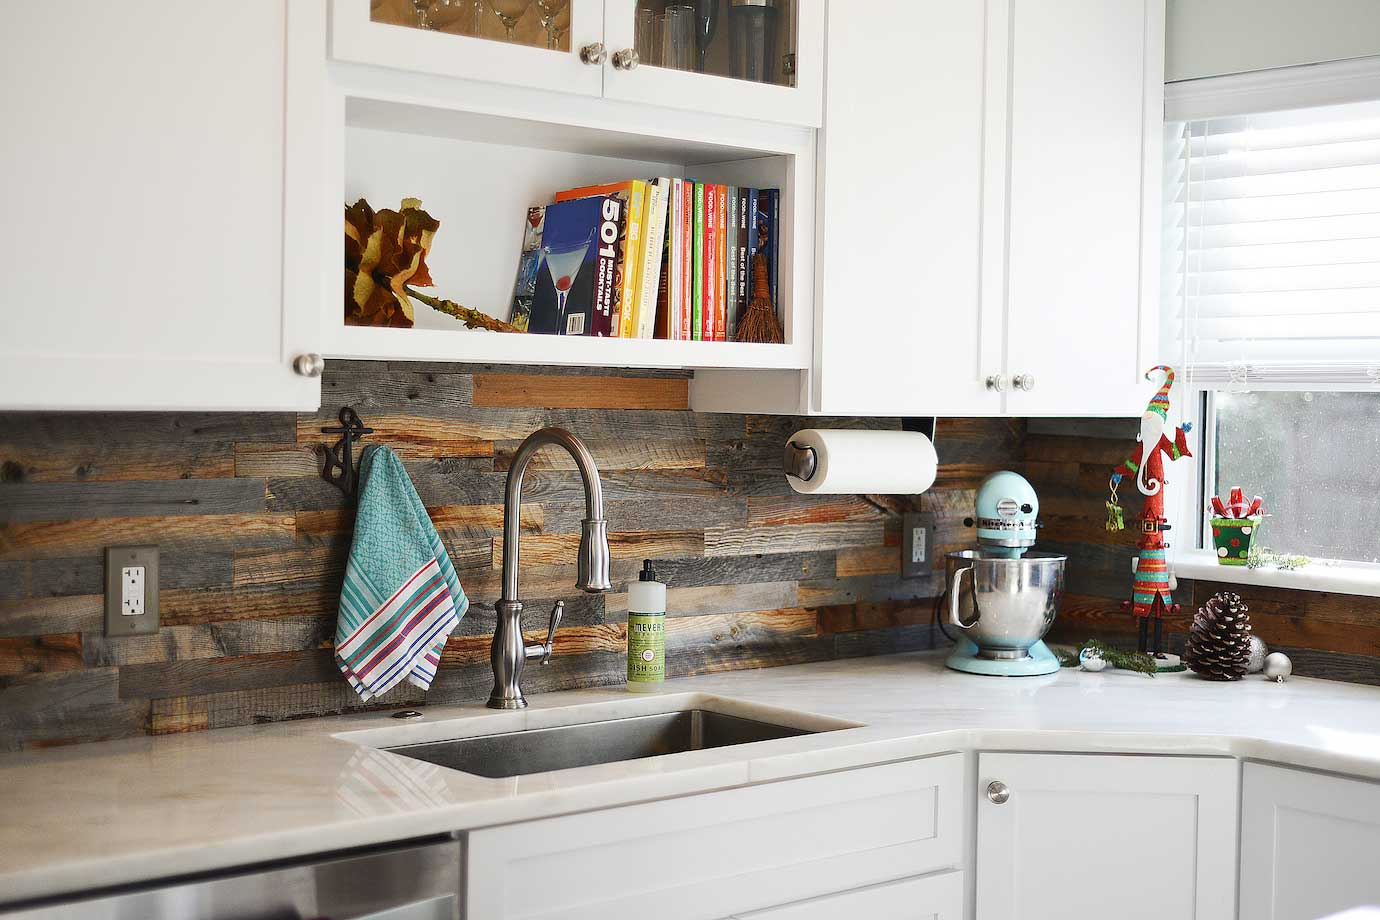 6 Outstanding Kitchen Backsplash Ideas That Make You Feel